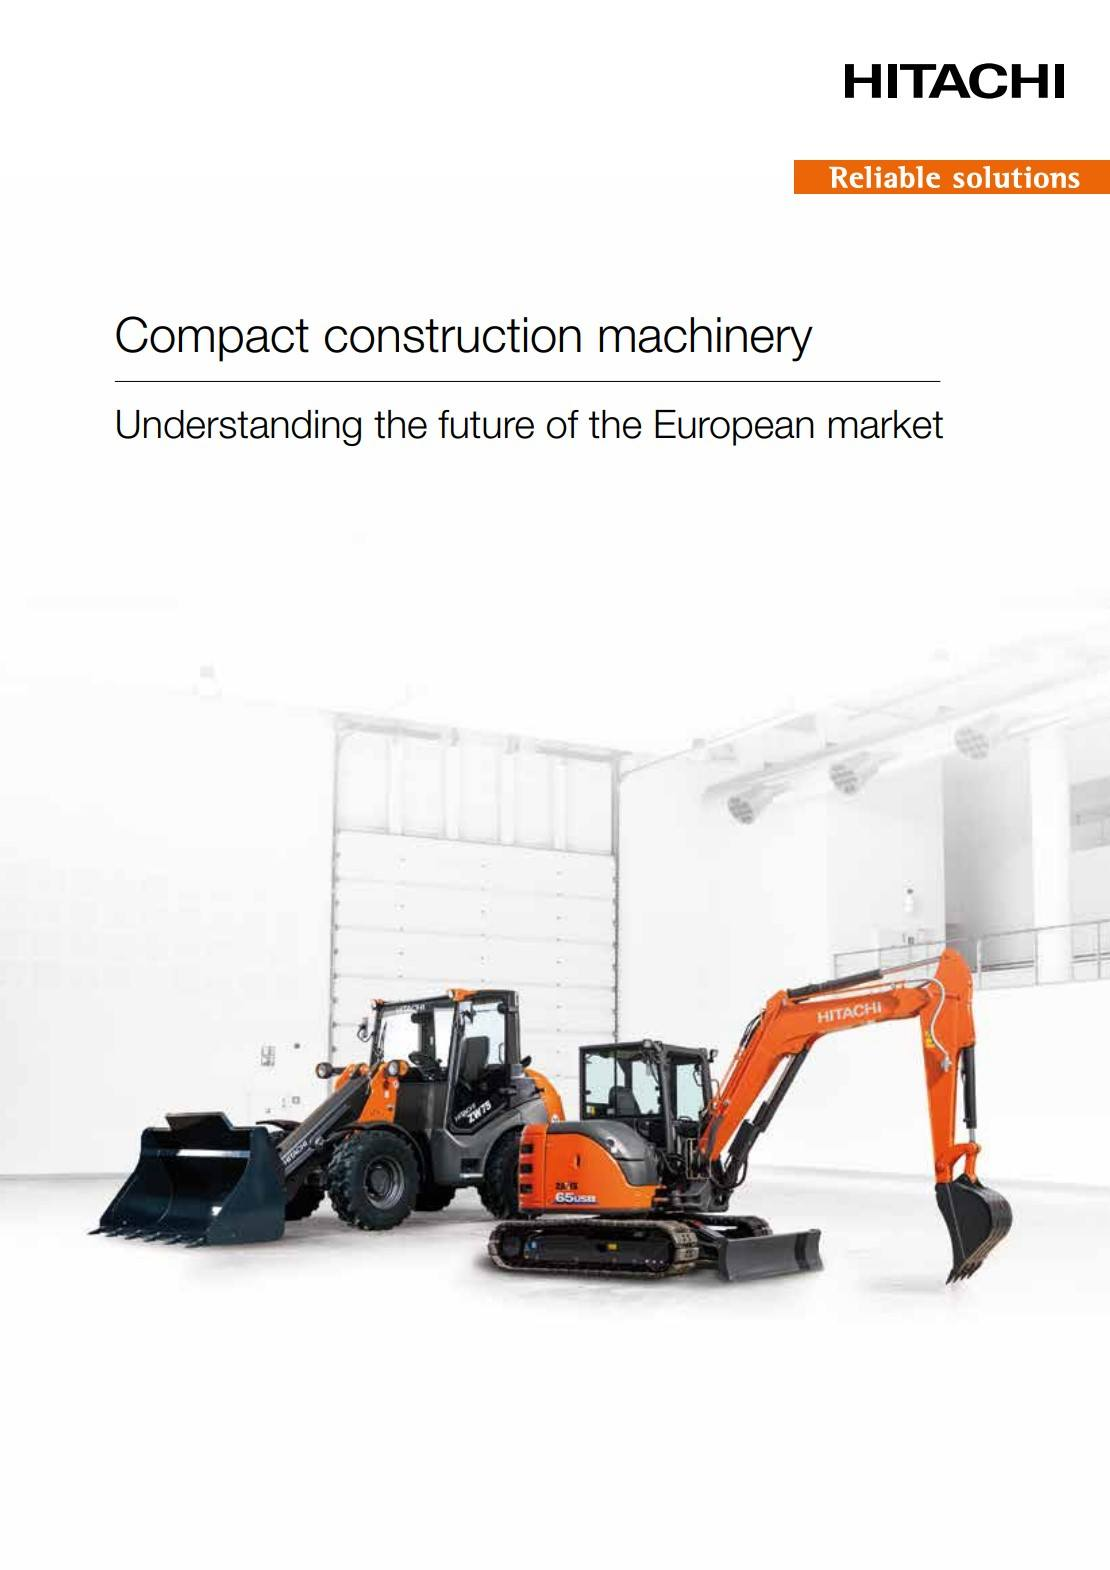 Whitepaper - Compact Construction Machinery - Understanding the future of the European market